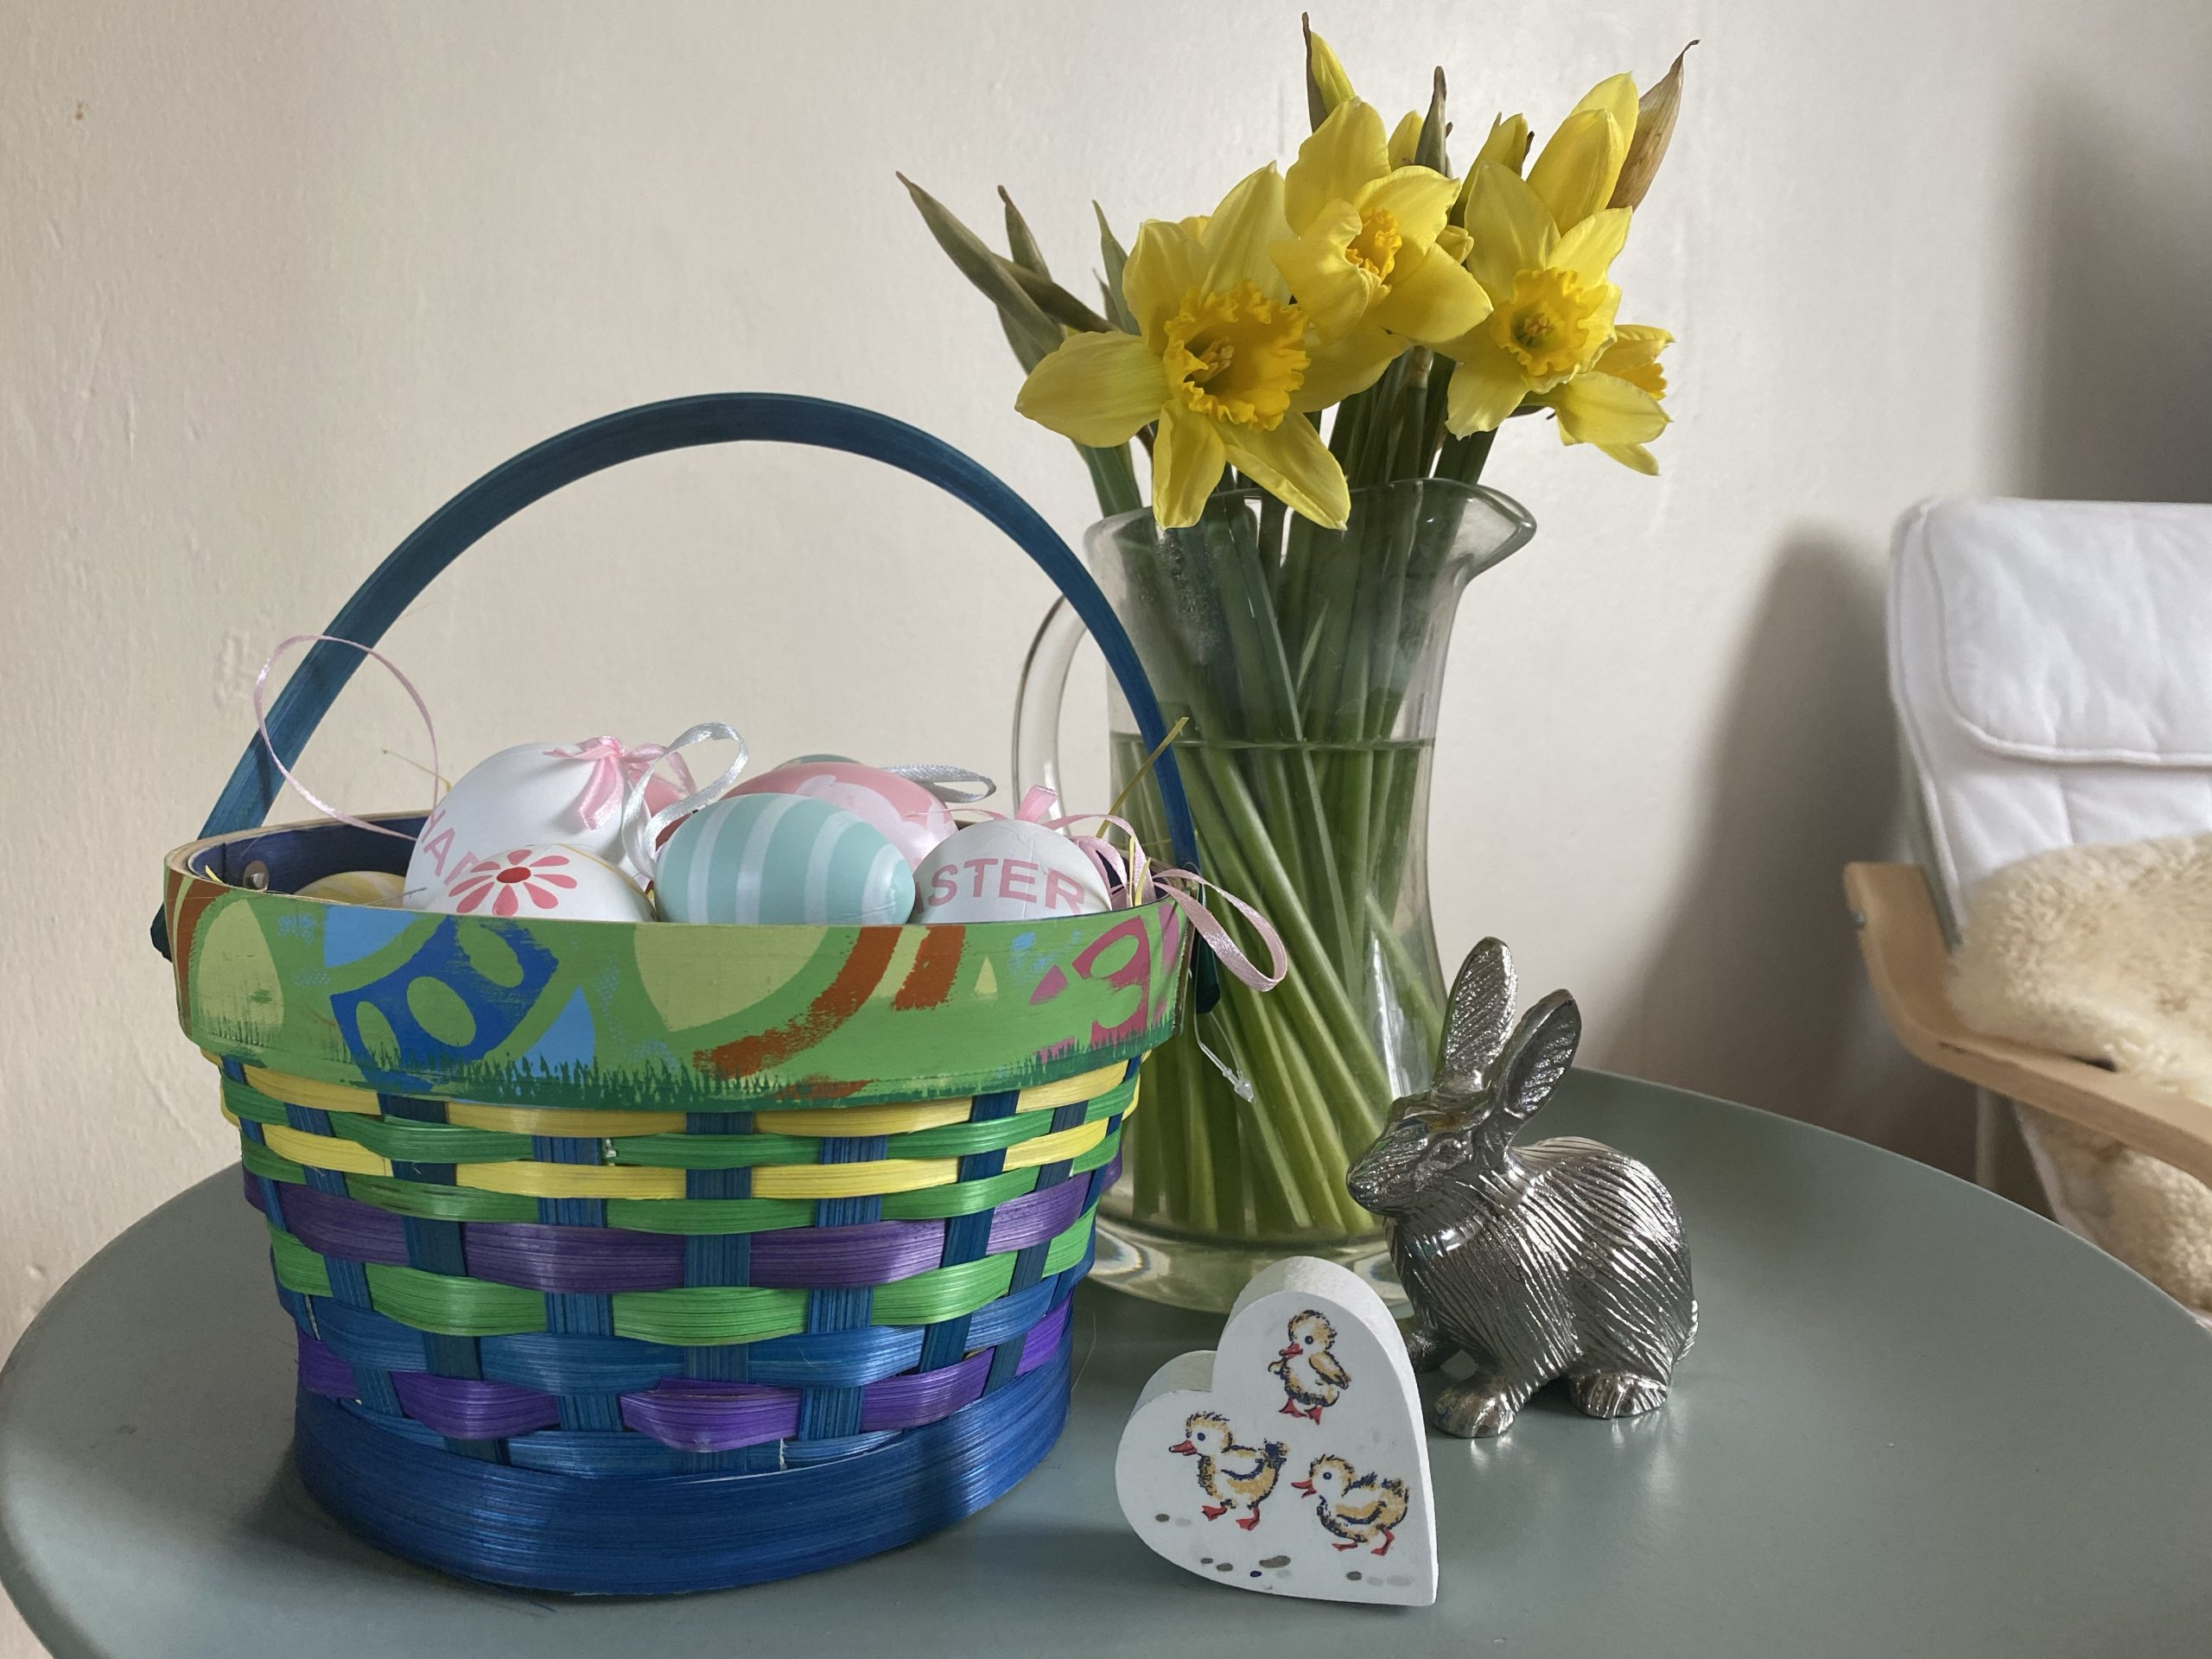 Easter Home decor with a basket of eggs and daffodils